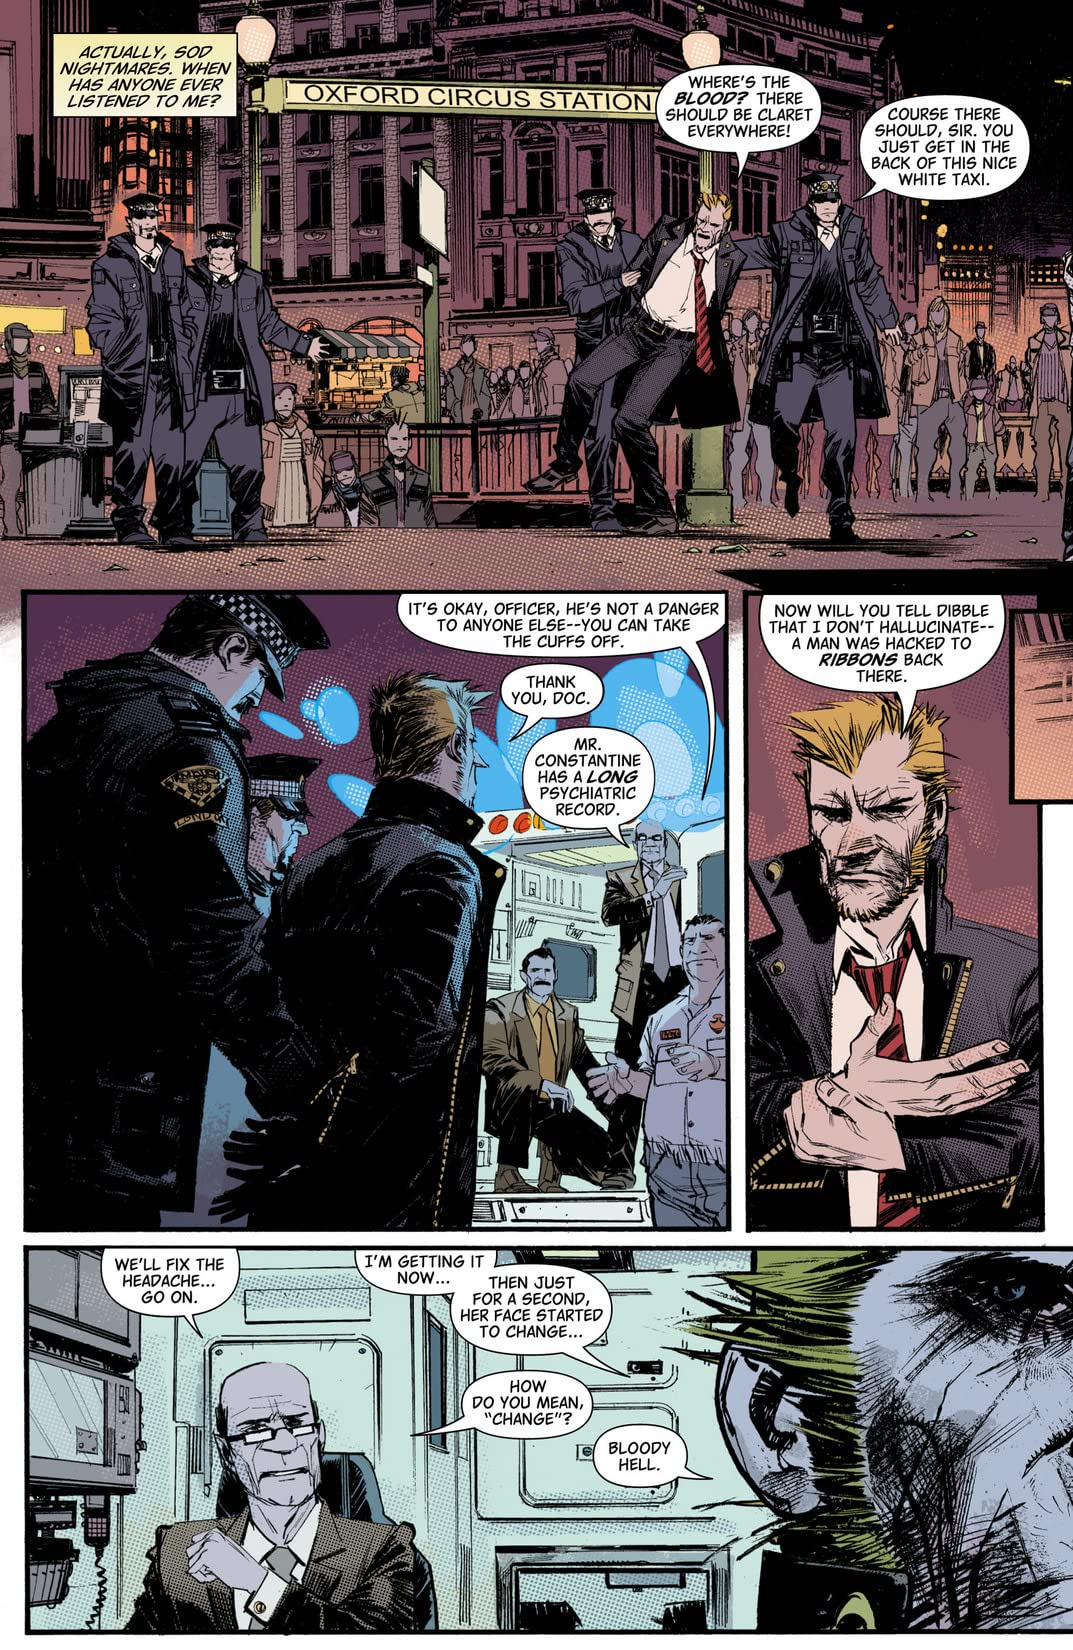 John Constantine: Hellblazer - City of Demons #3 (of 5)